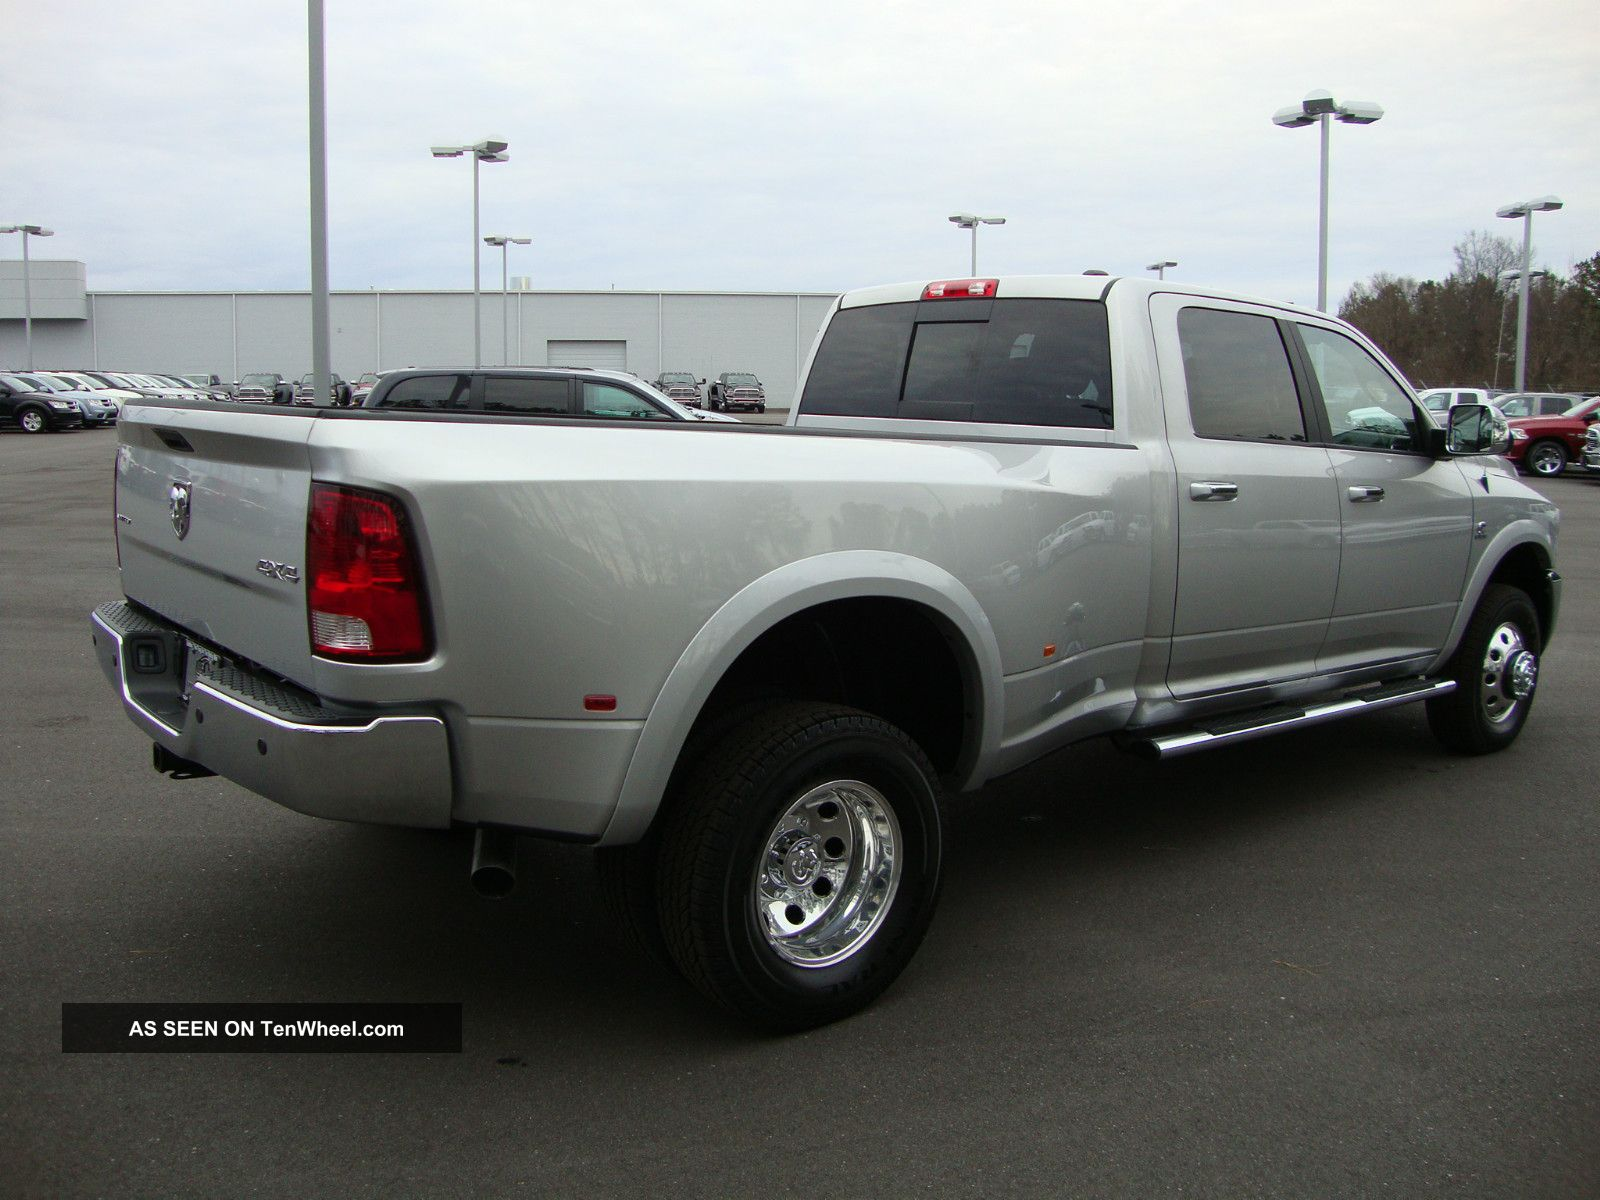 2012 dodge ram 3500 crew cab limited 800 ho 4x4 lowest in usa b4 you buy - Crew cab dodge ram ...